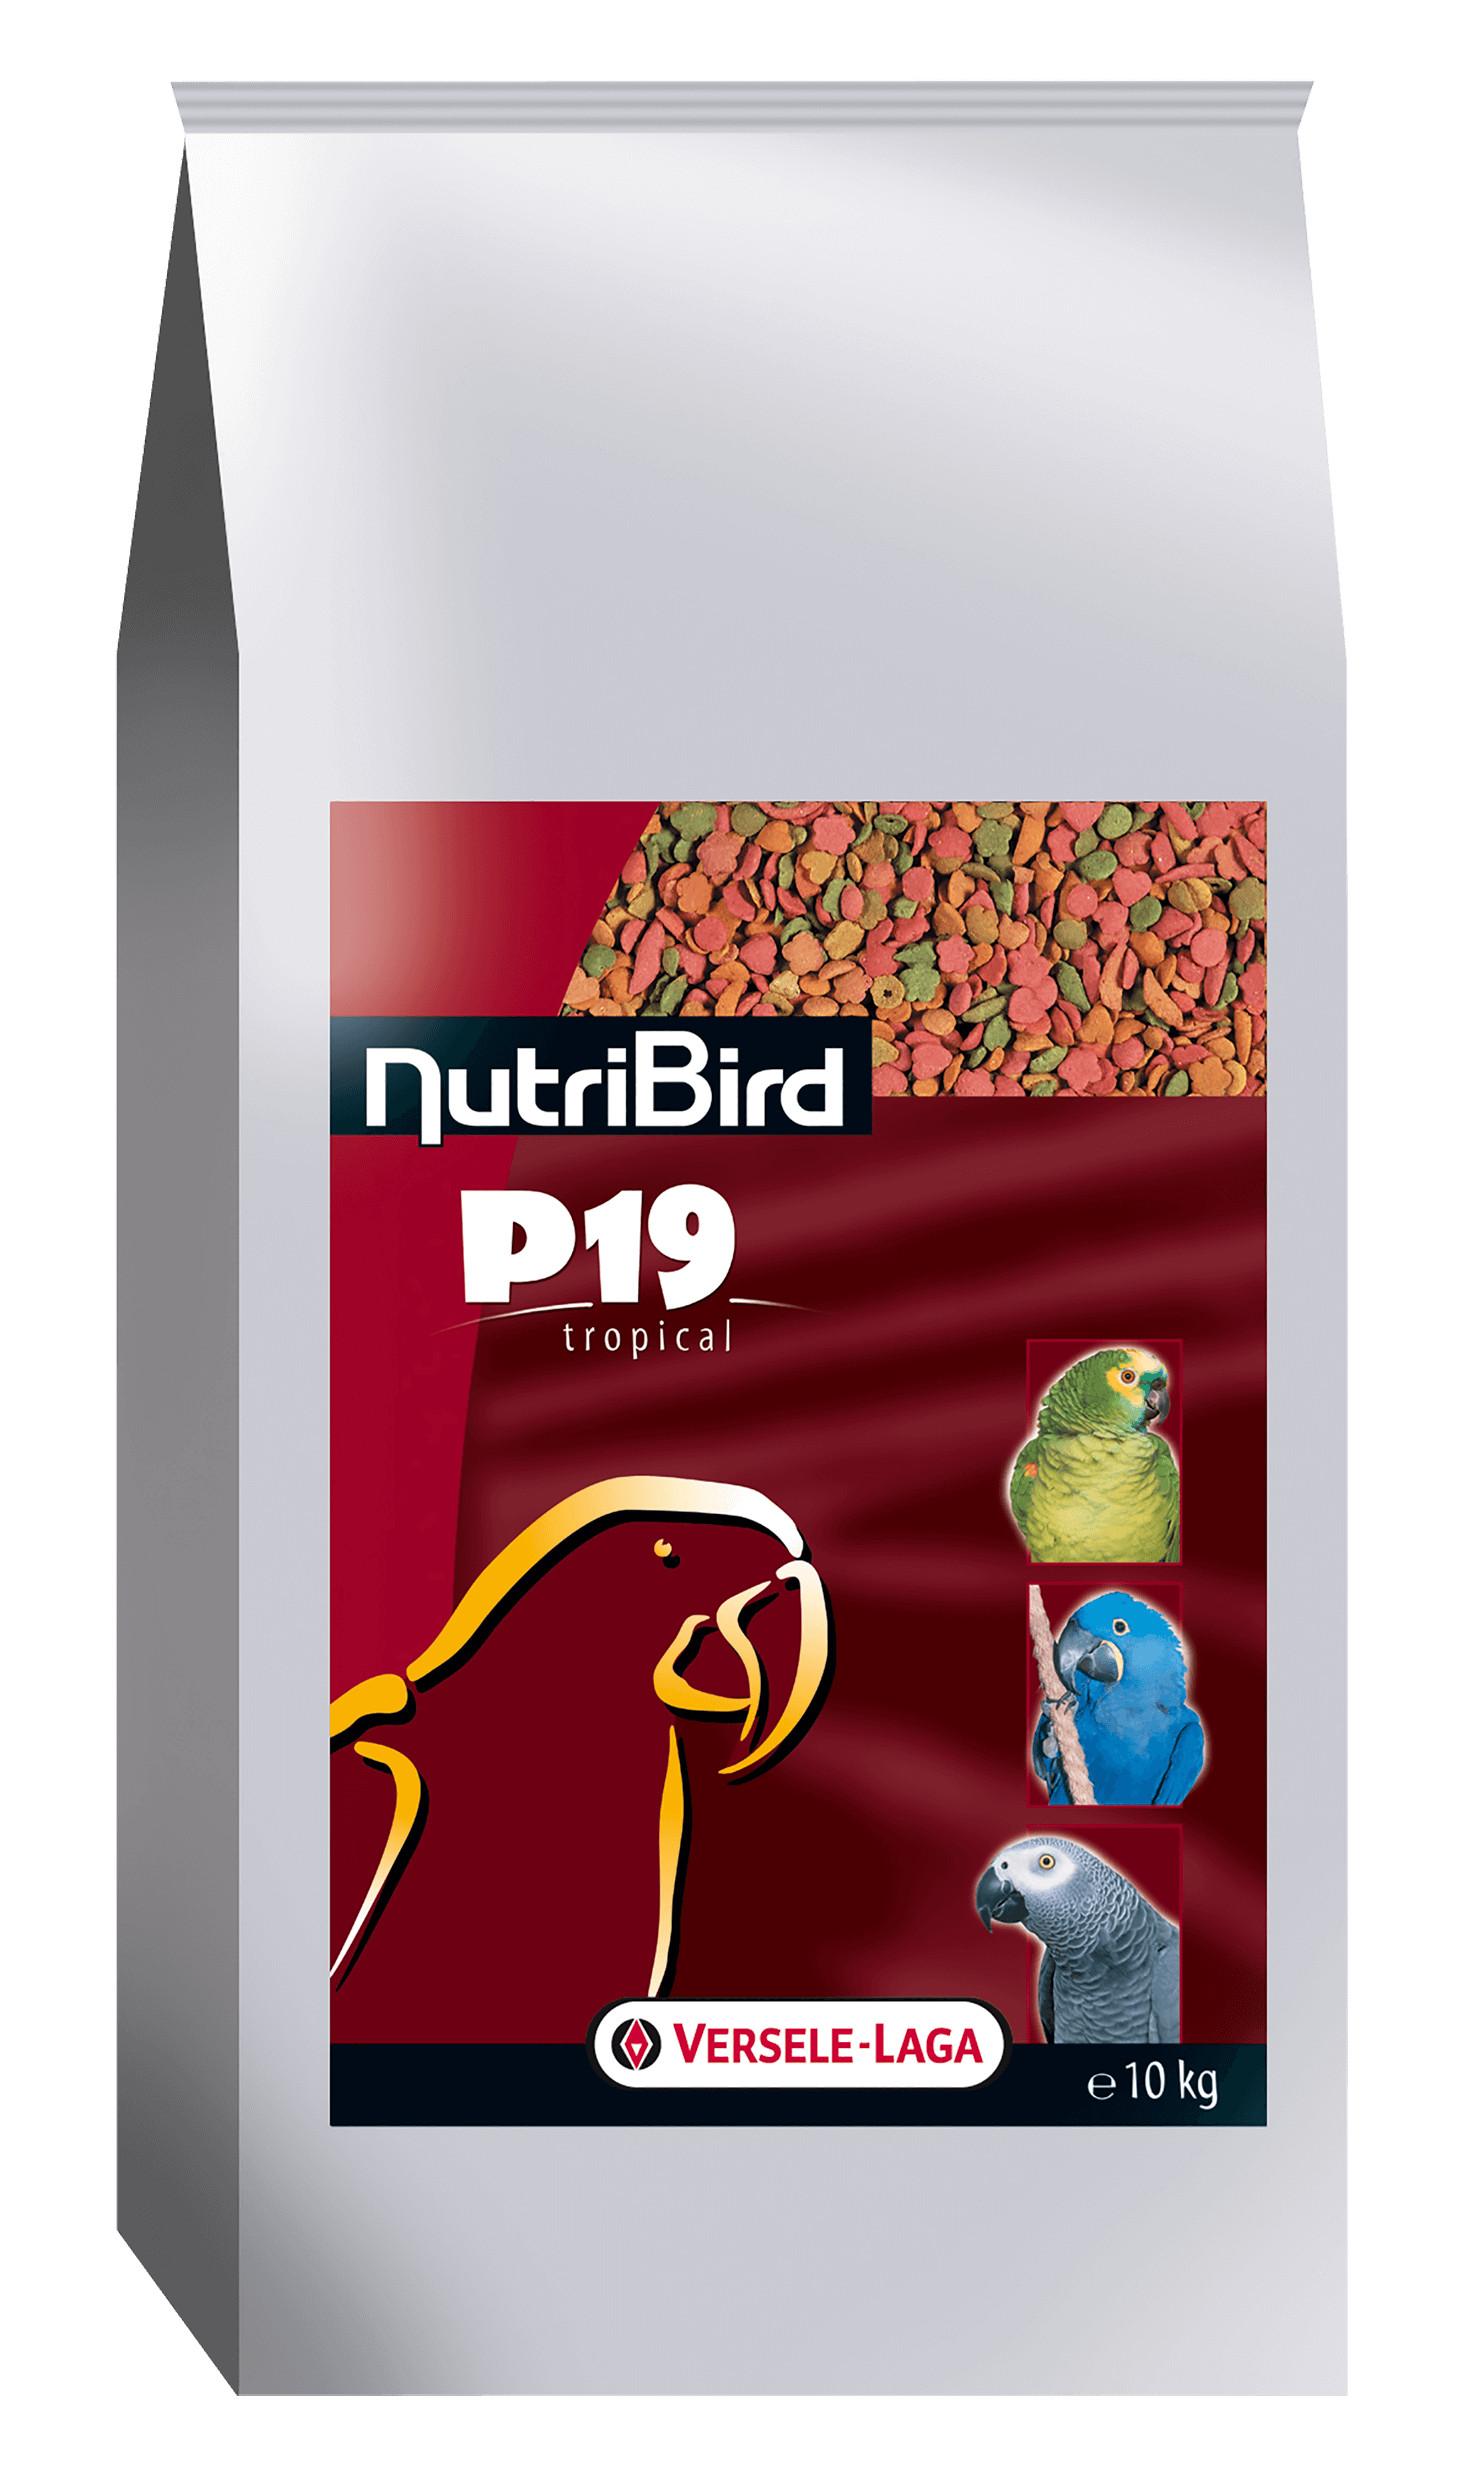 Nutribird P19 tropical kweek papegaaien